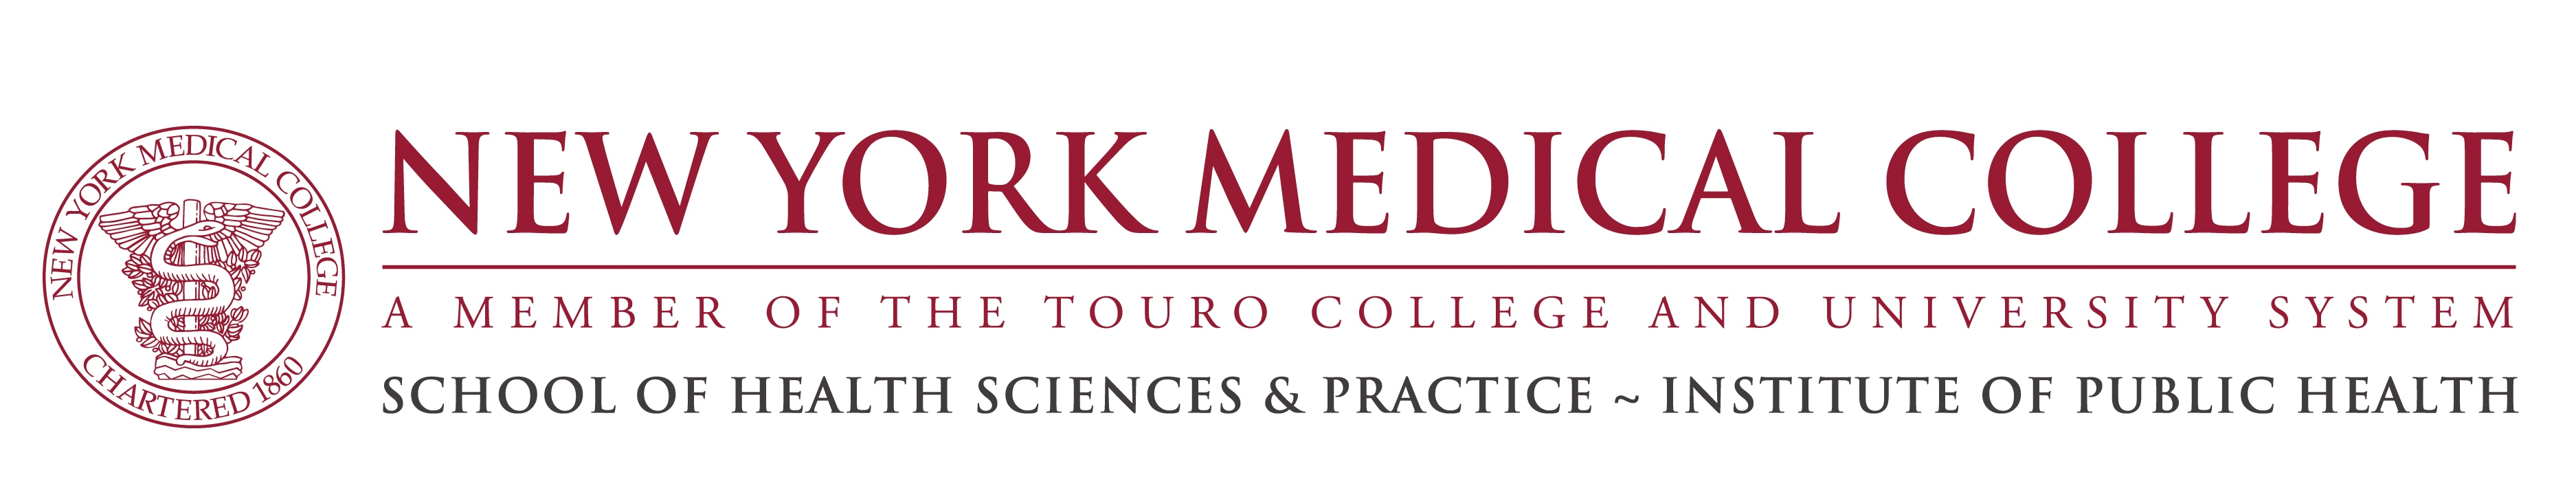 Medical Transcription new york college subjects